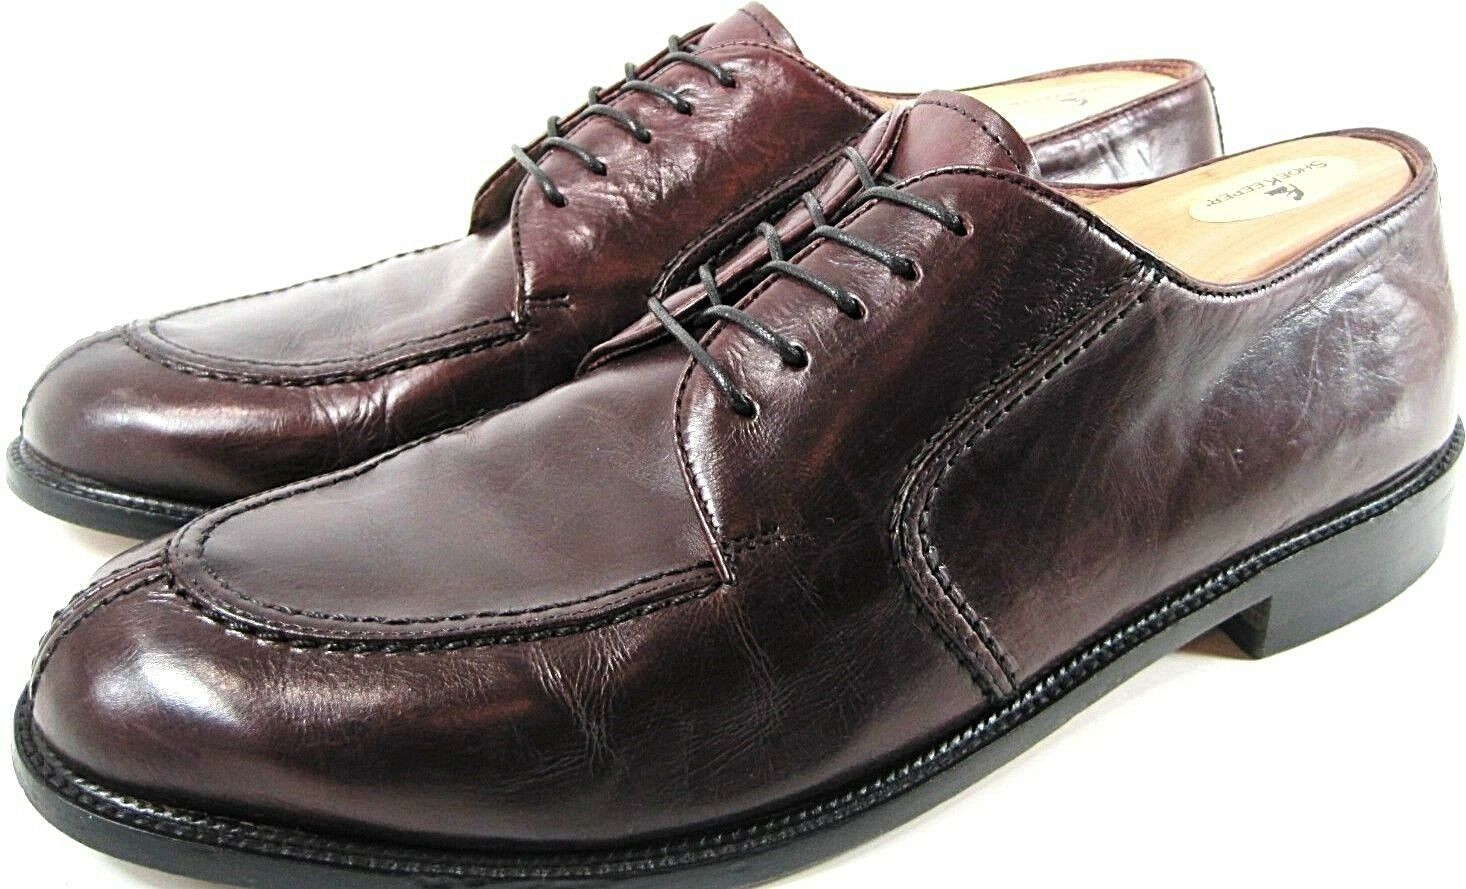 Pronto men Firenze Men Split Toe Oxford shoes Leather Size 12 M Brown.